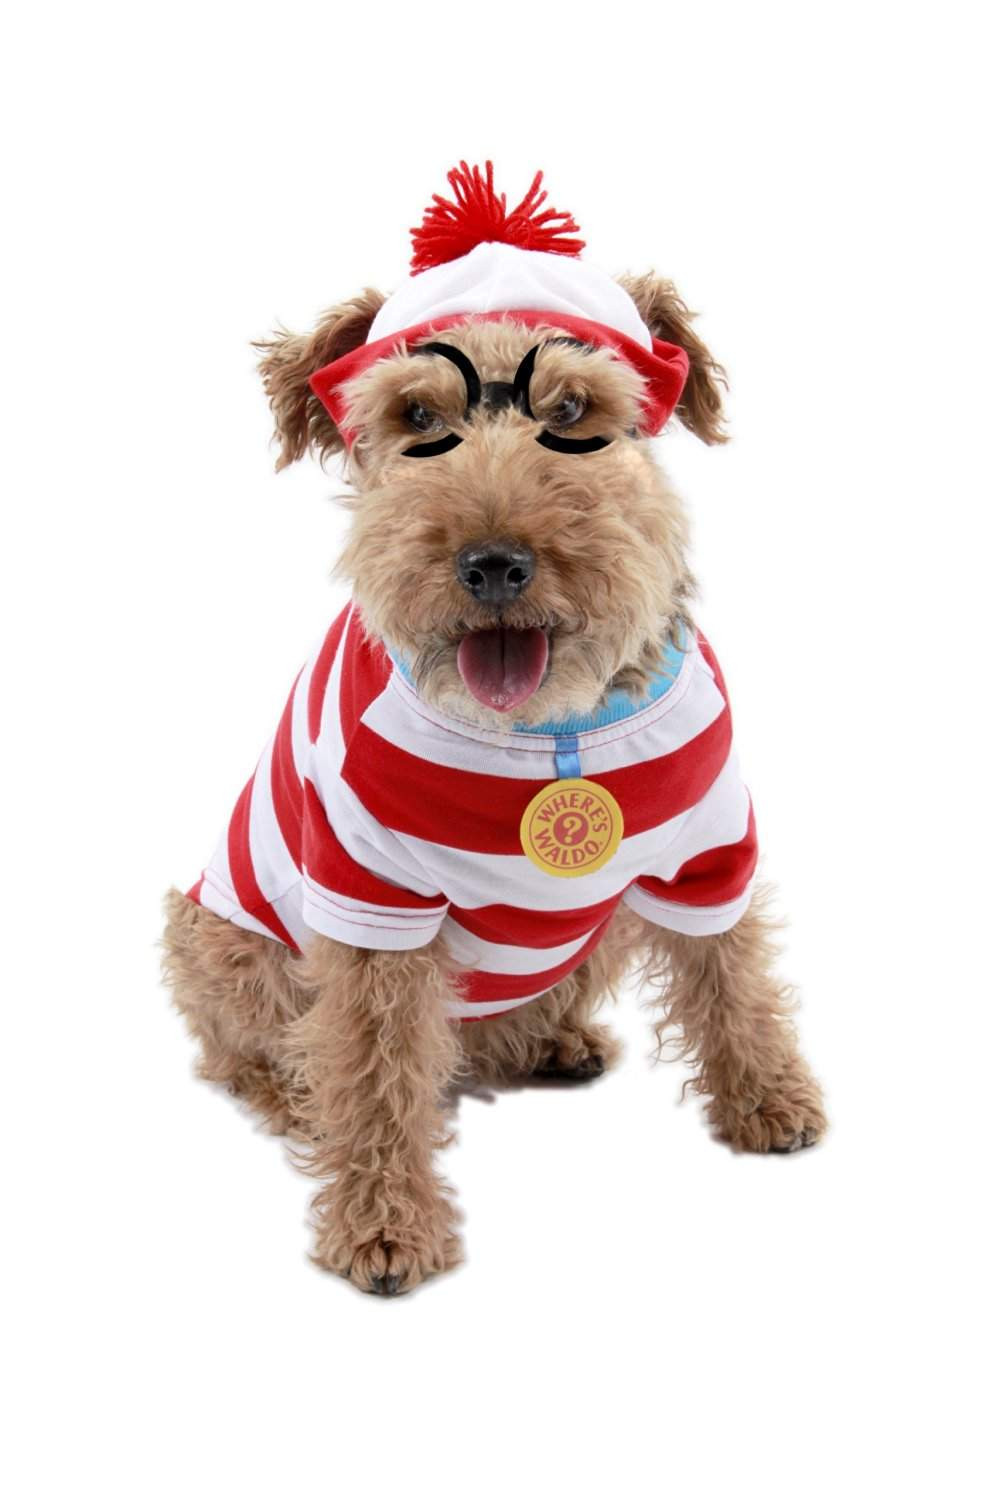 Best ideas about DIY Costumes For Dogs . Save or Pin Top 20 Best Cute Dog Costumes for Halloween in 2017 Now.